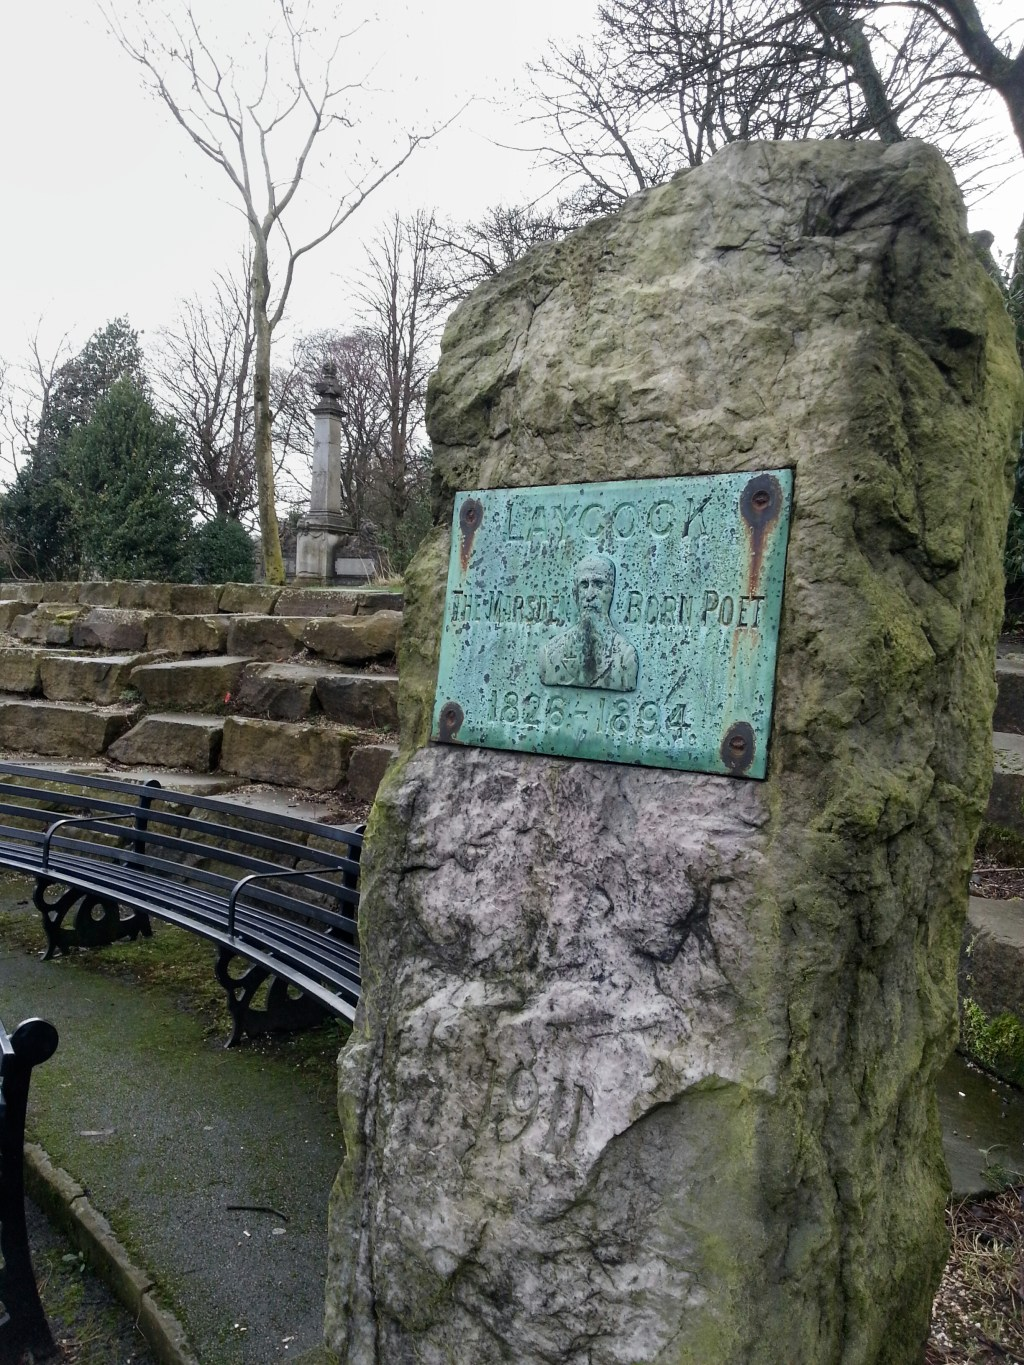 Samuel Laycock memorial stone Marsden park as part of a Poetry Trail Marsden